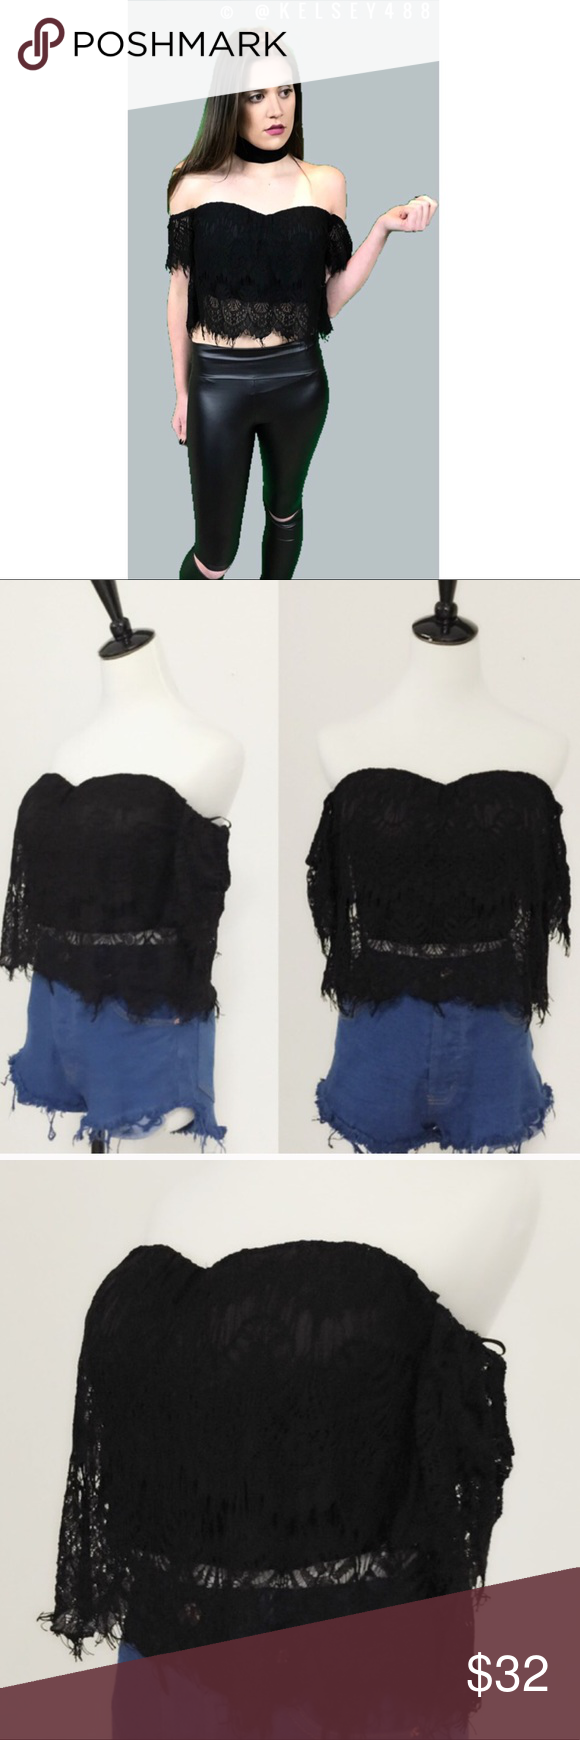 Lace Crop Top Lace detail crop top with lace detail and perfect elastic c internal Bralette built in. True to size made in the USA. Color: black UNEDITED BOUTIQUE Tops Crop Tops